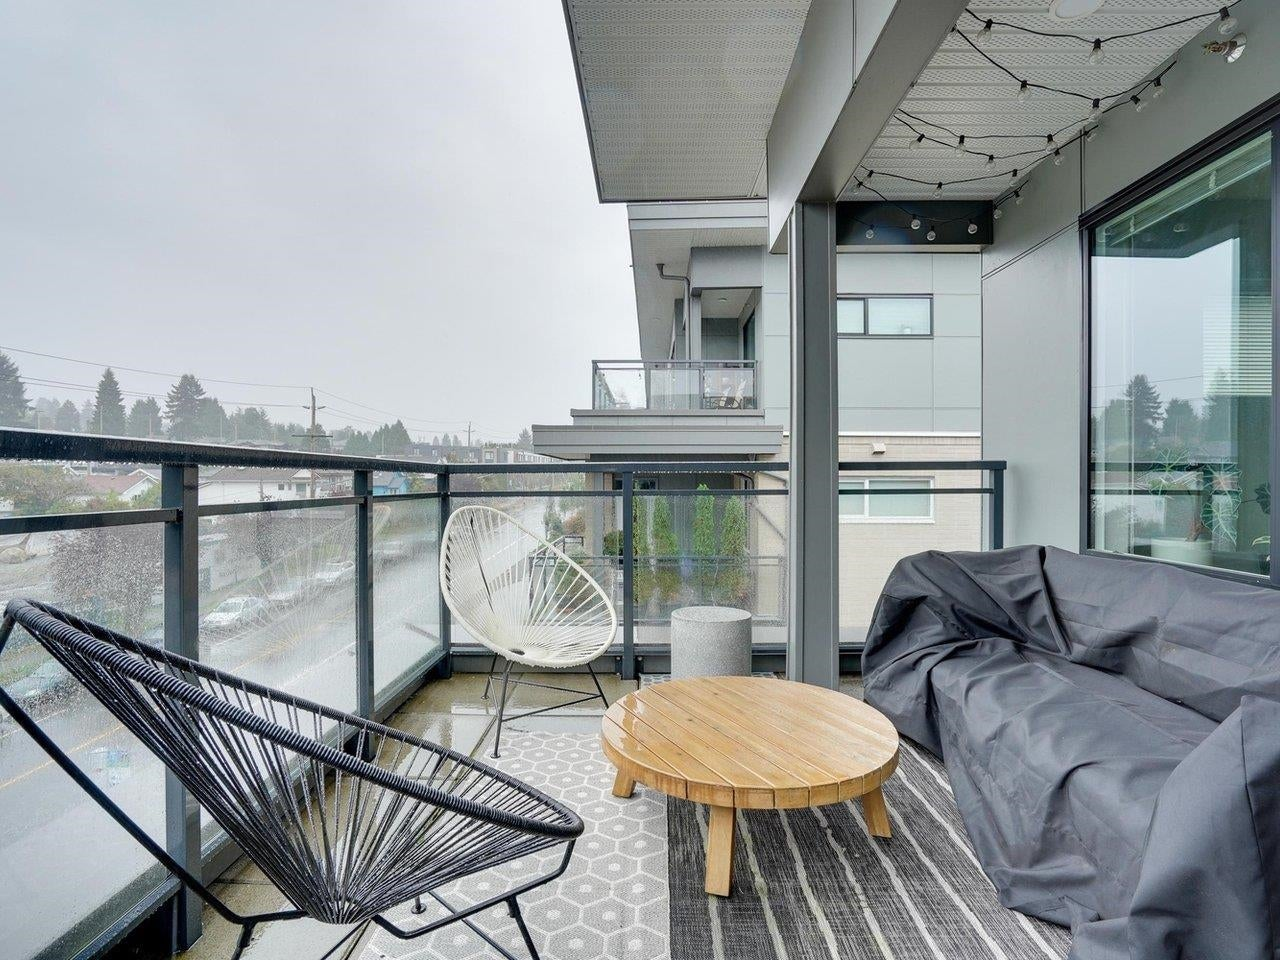 409 615 E 3RD STREET - Lower Lonsdale Apartment/Condo for sale, 2 Bedrooms (R2621616) - #7